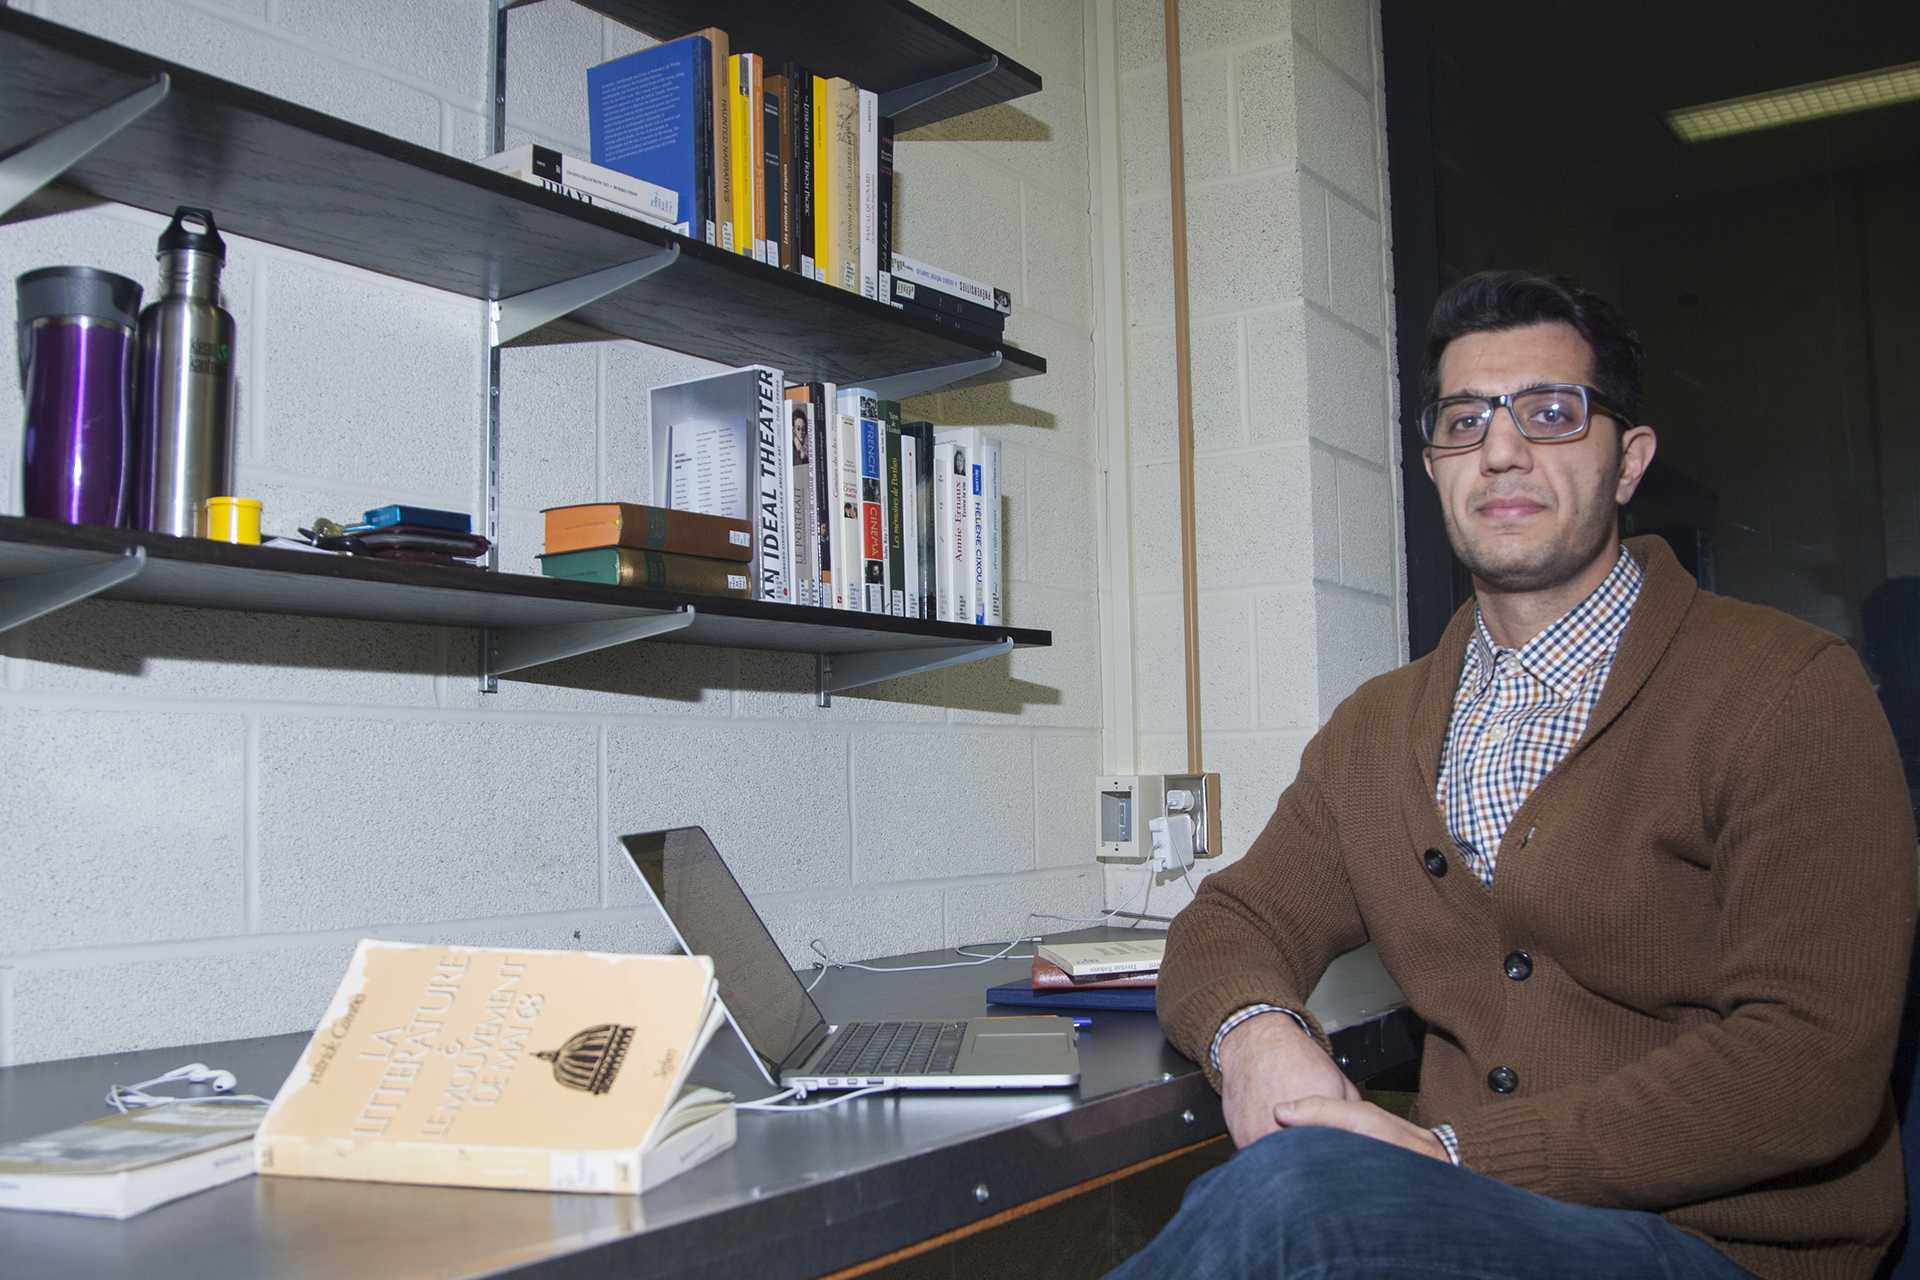 UI grad student Farzad Salamifar poses for a portrait in the Main Library on Wednesday, Jan. 24, 2018. Salamifar is an Iranian immigrant at the University of Iowa on a student visa. (Lily Smith/The Daily Iowan)